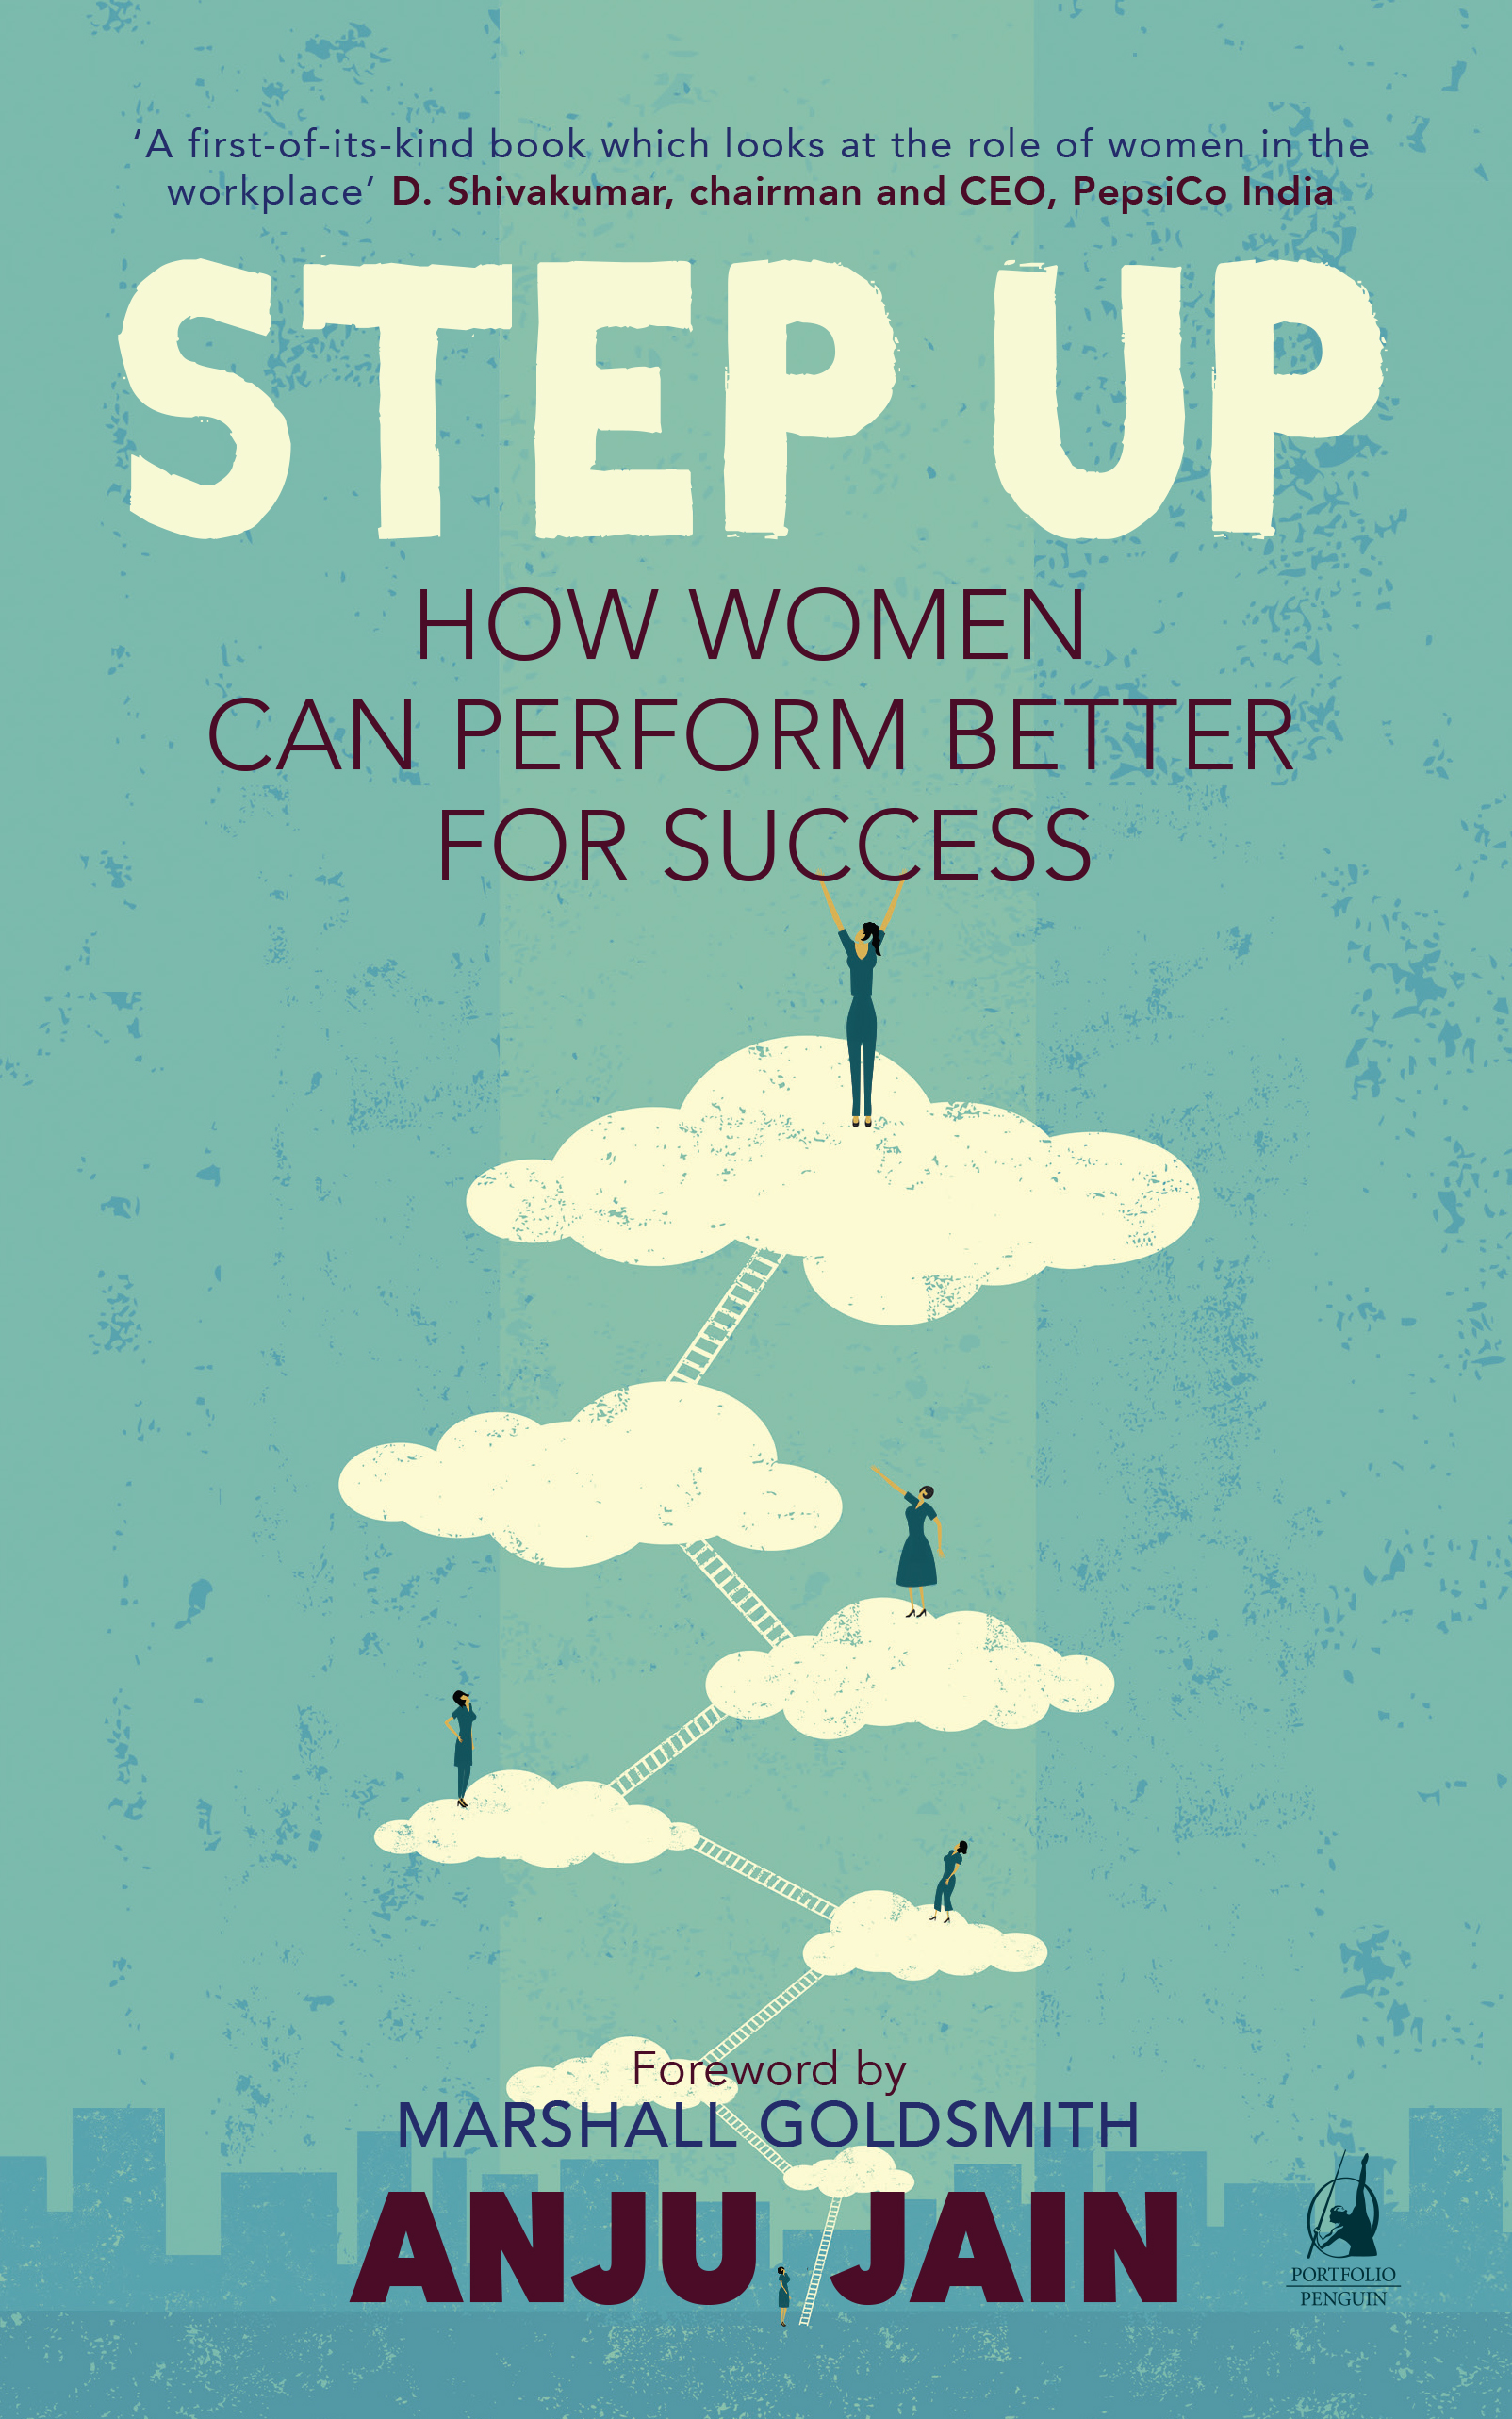 TBI Blogs: 5 Strategies to Help Women Get Better Representation in the Corporate World